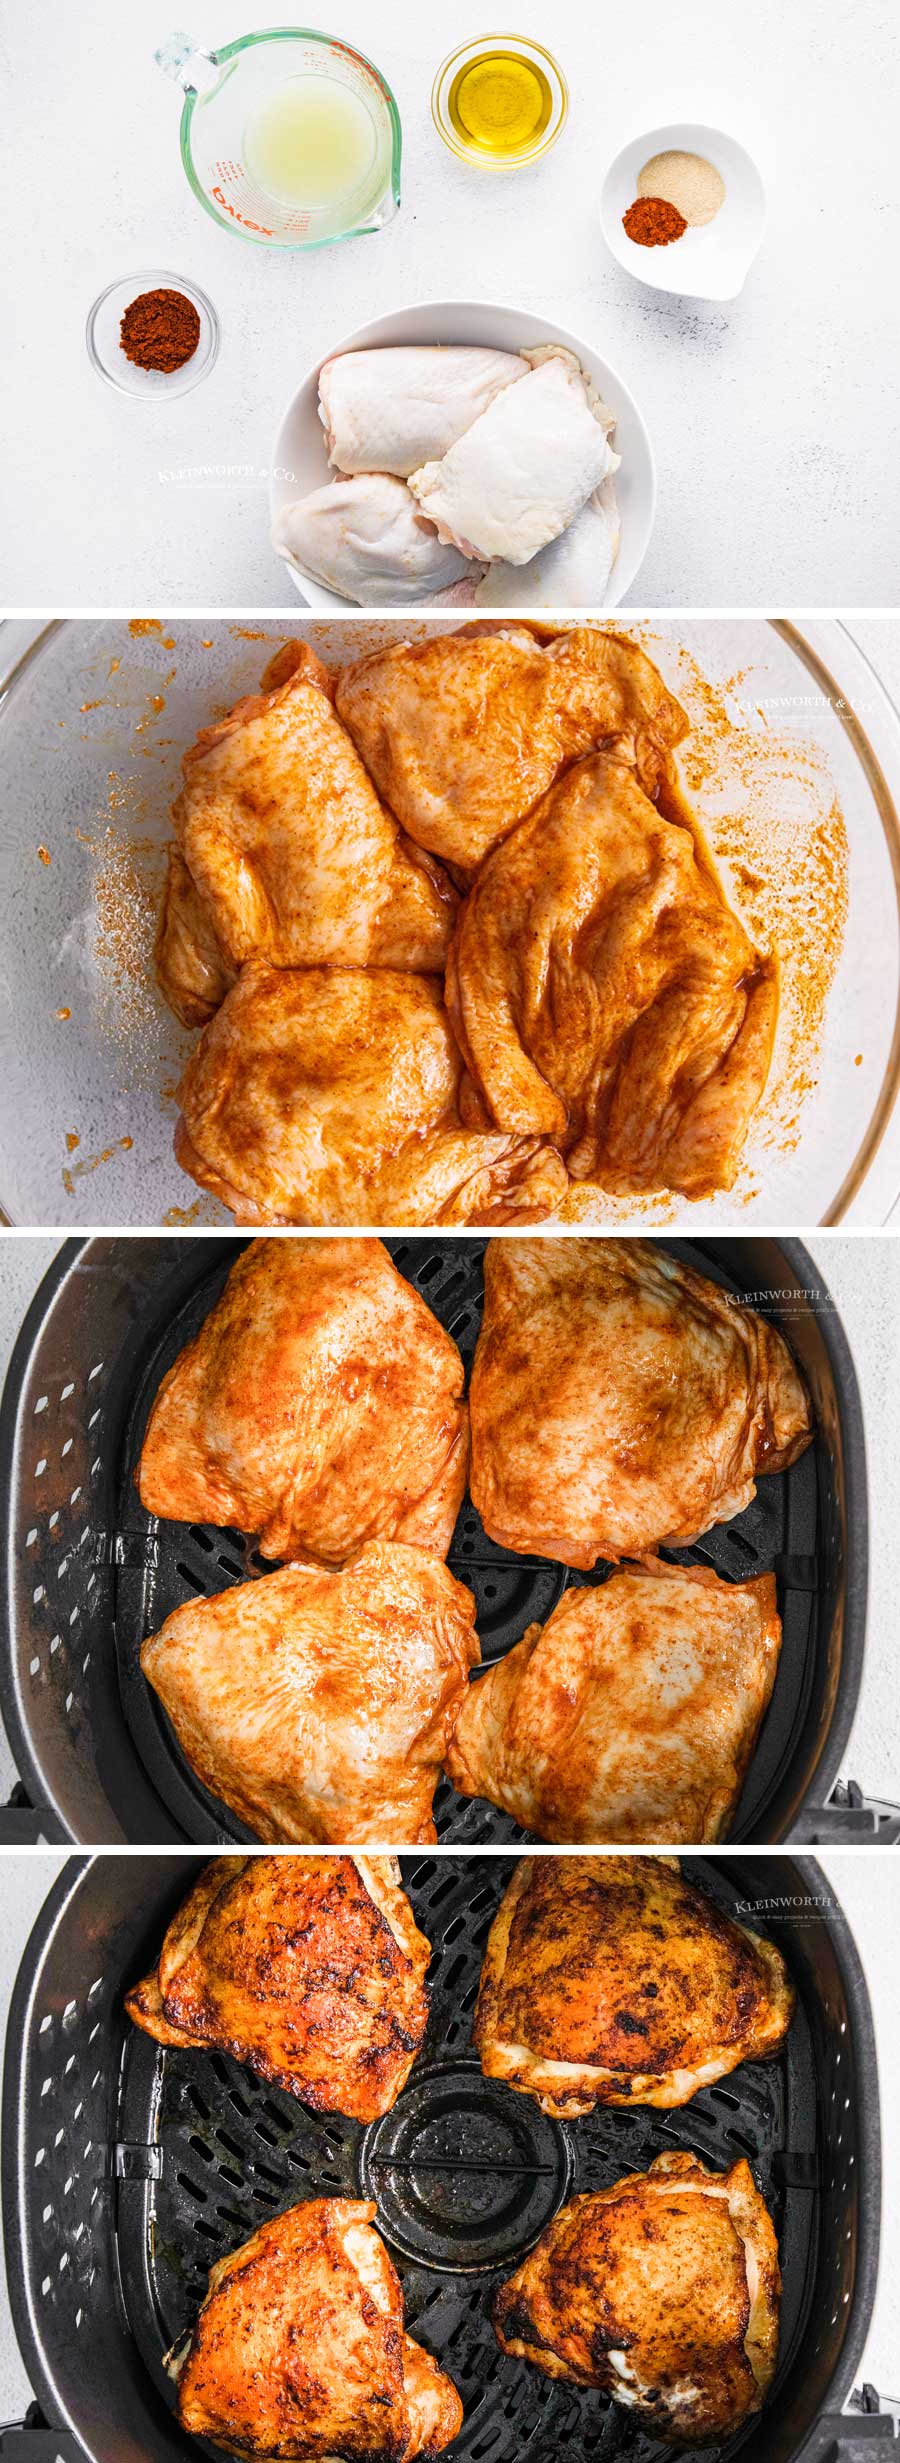 how to make Chili Lime Chicken - Air Fryer